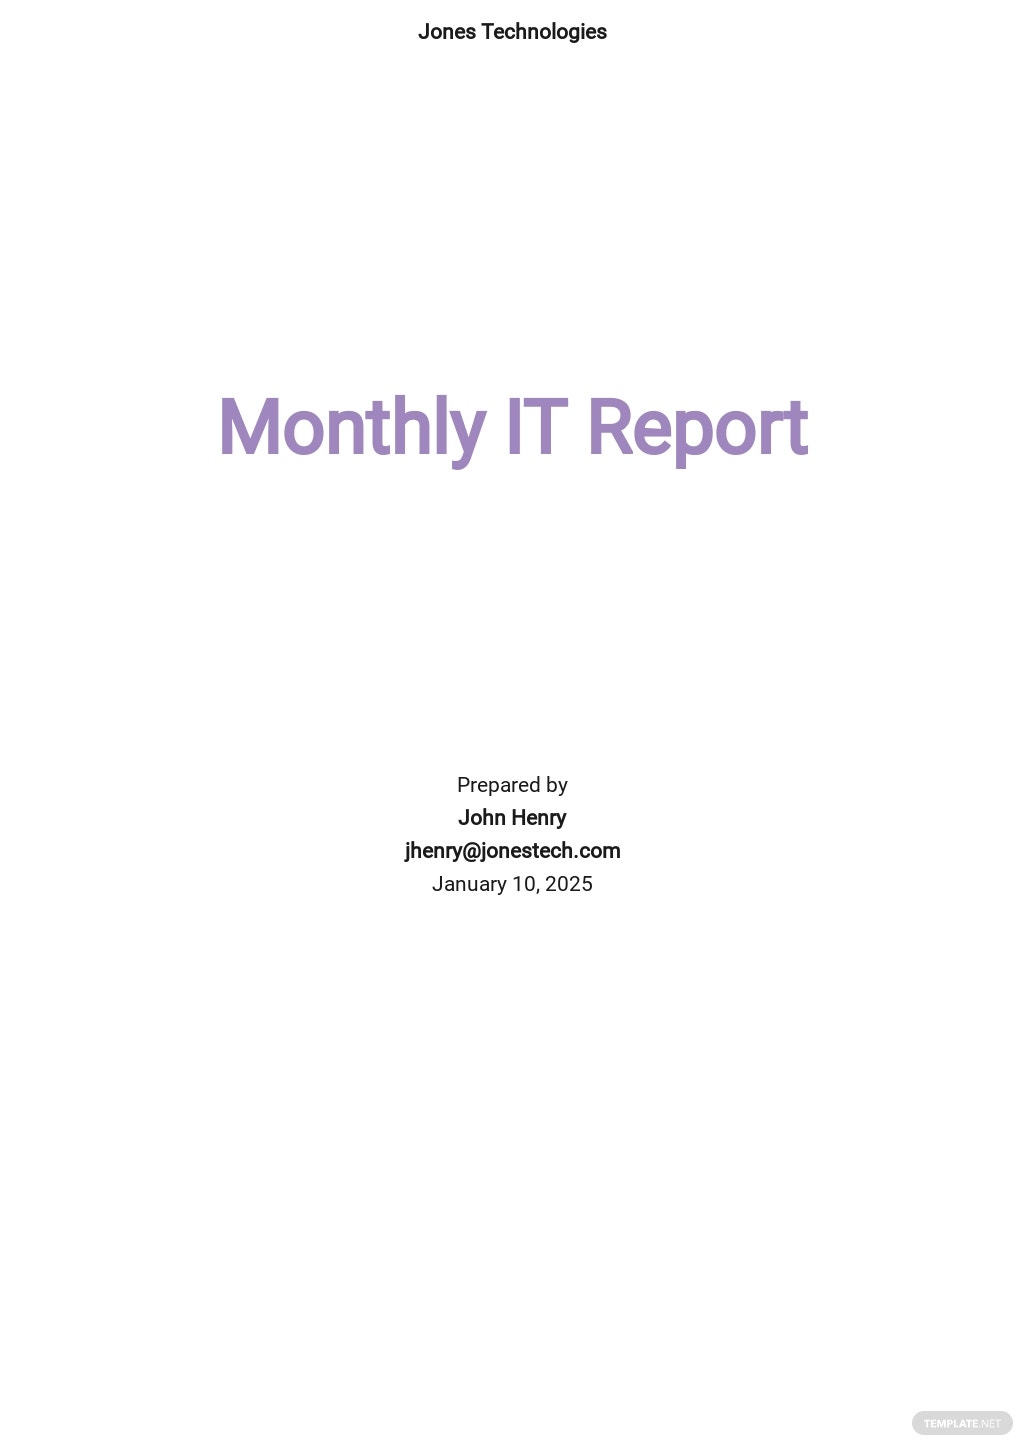 Monthly IT Report for Management Template.jpe